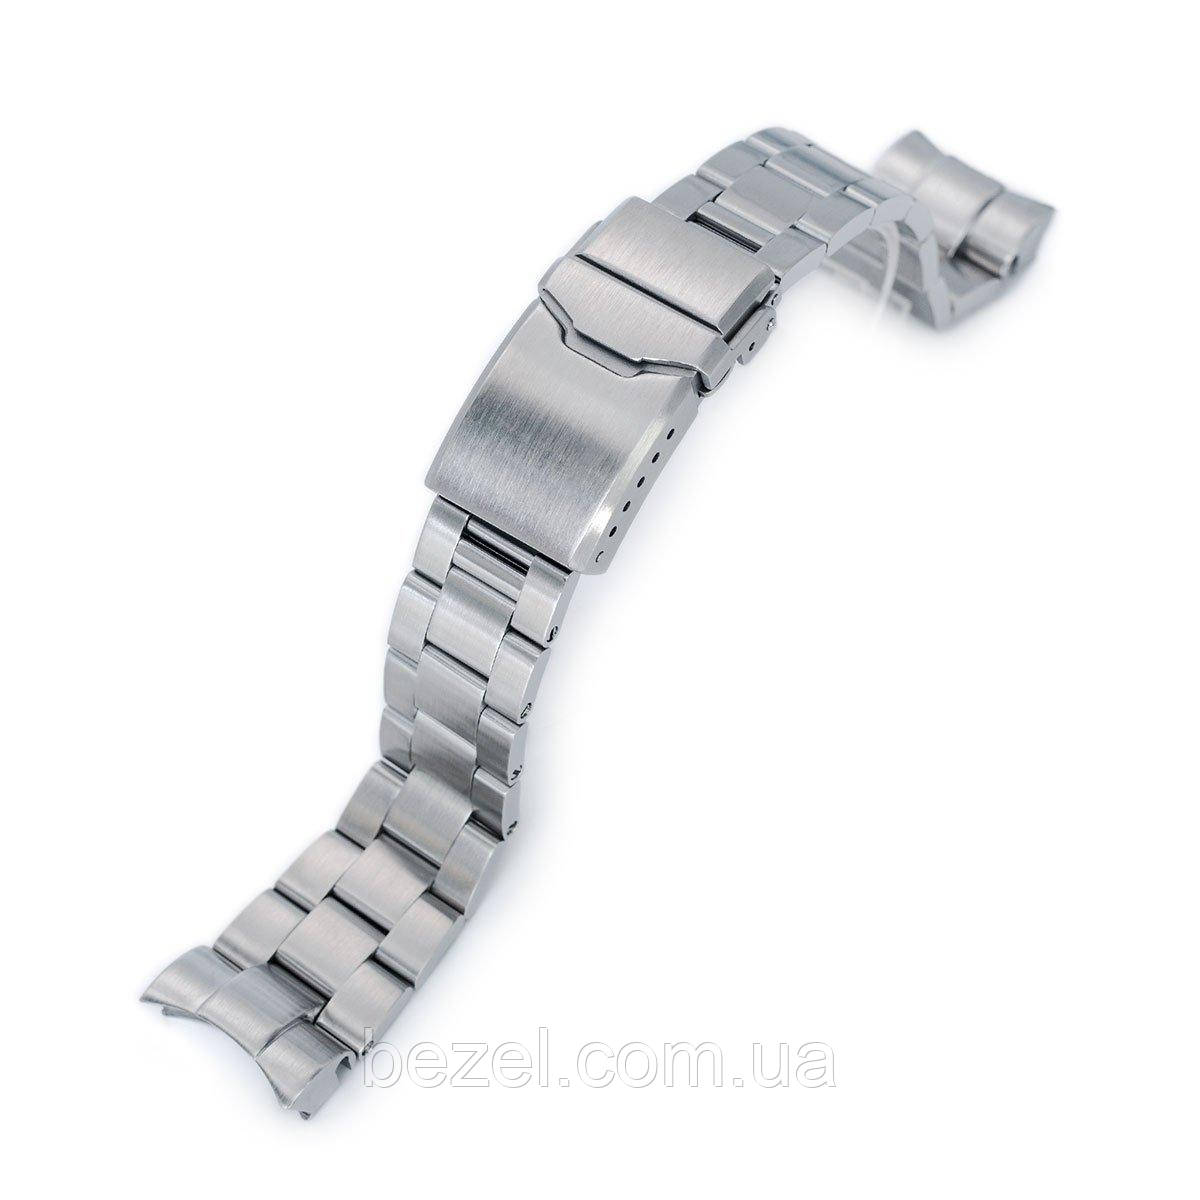 22mm Super 3D Oyster 316L Stainless Steel Watch Bracelet for Tudor Black Bay, Button Chamfer Clasp Brushed